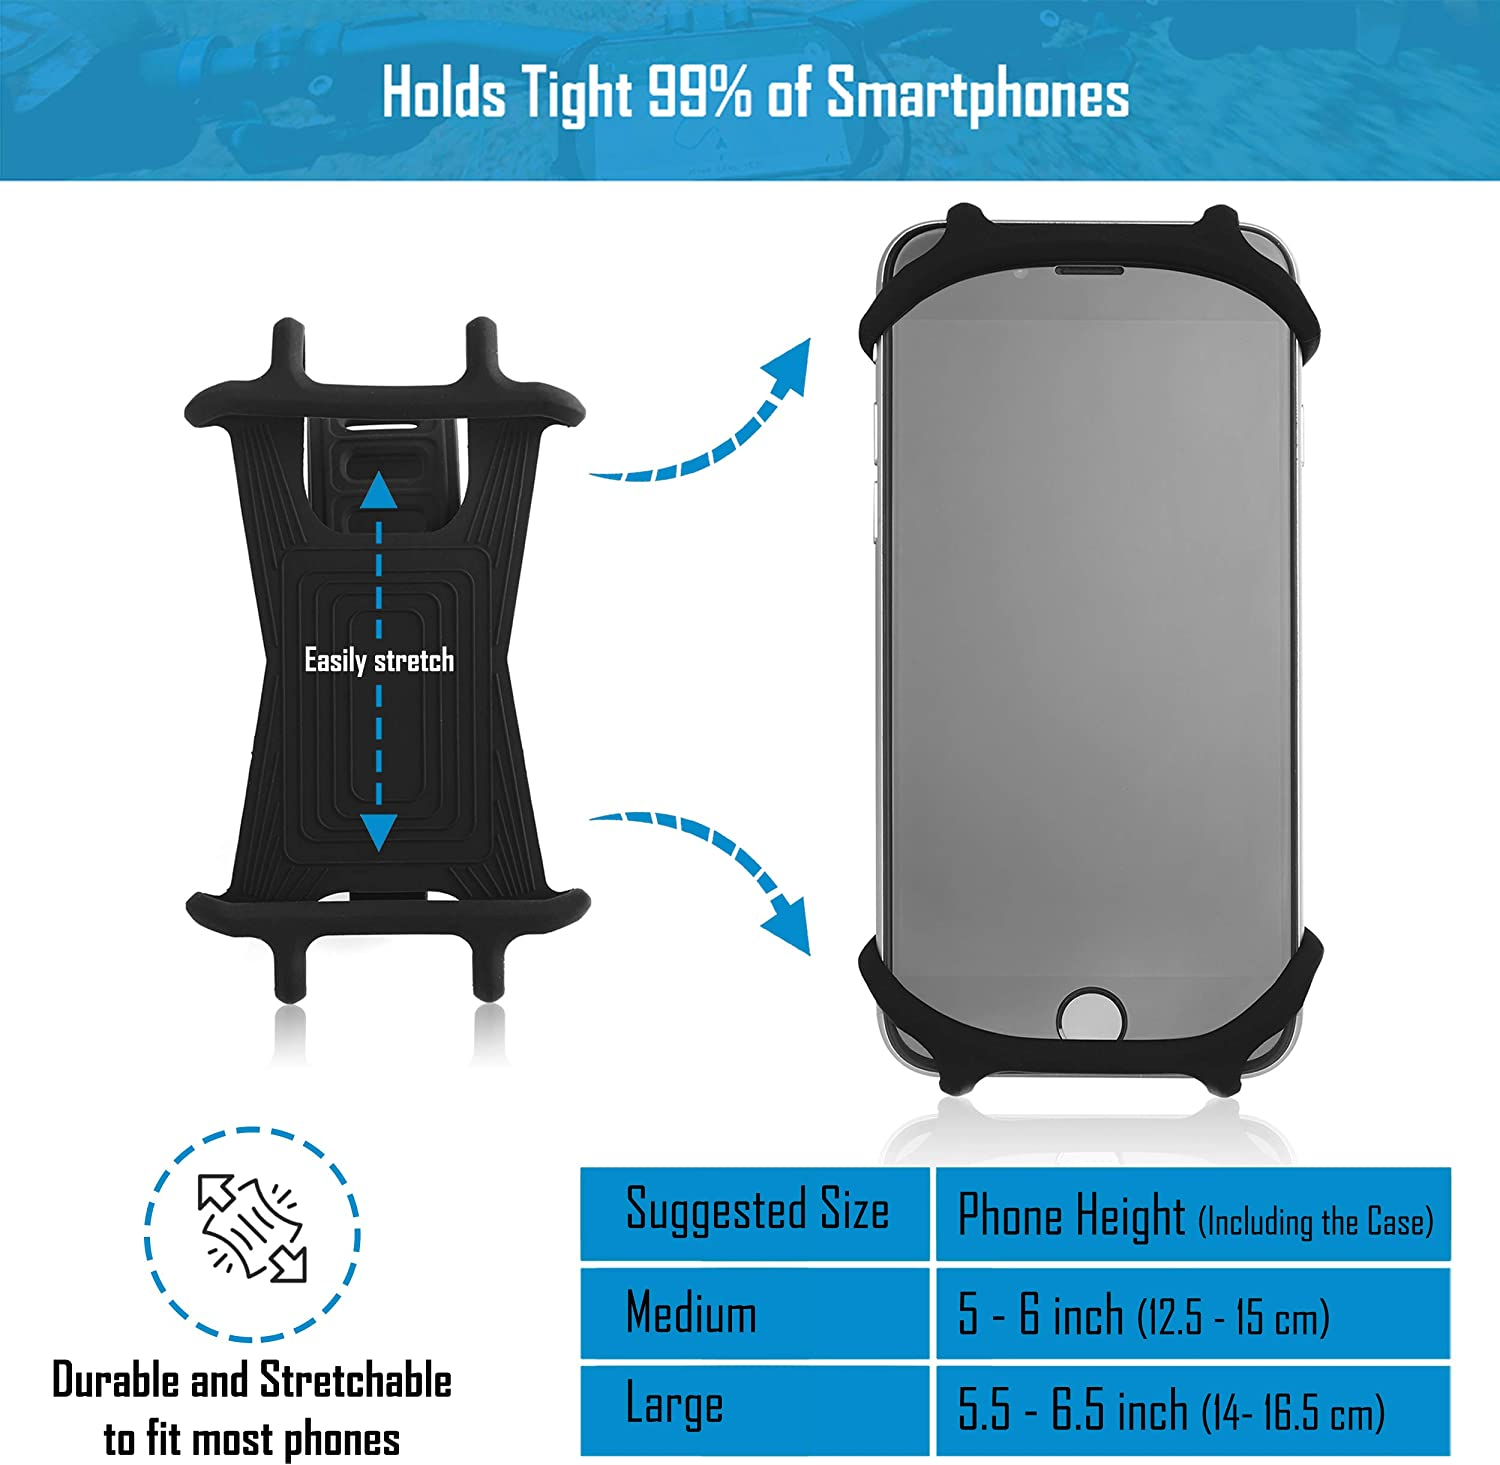 Samsung Series and MORE 6 7 Mobile Cellphone Holder // Universal Cradle for All Bicycle Handlebars and 99/% of Smartphones: iPhone 8 Premium Bike PHONE MOUNT Made of Durable Non-Slip Silicone 5